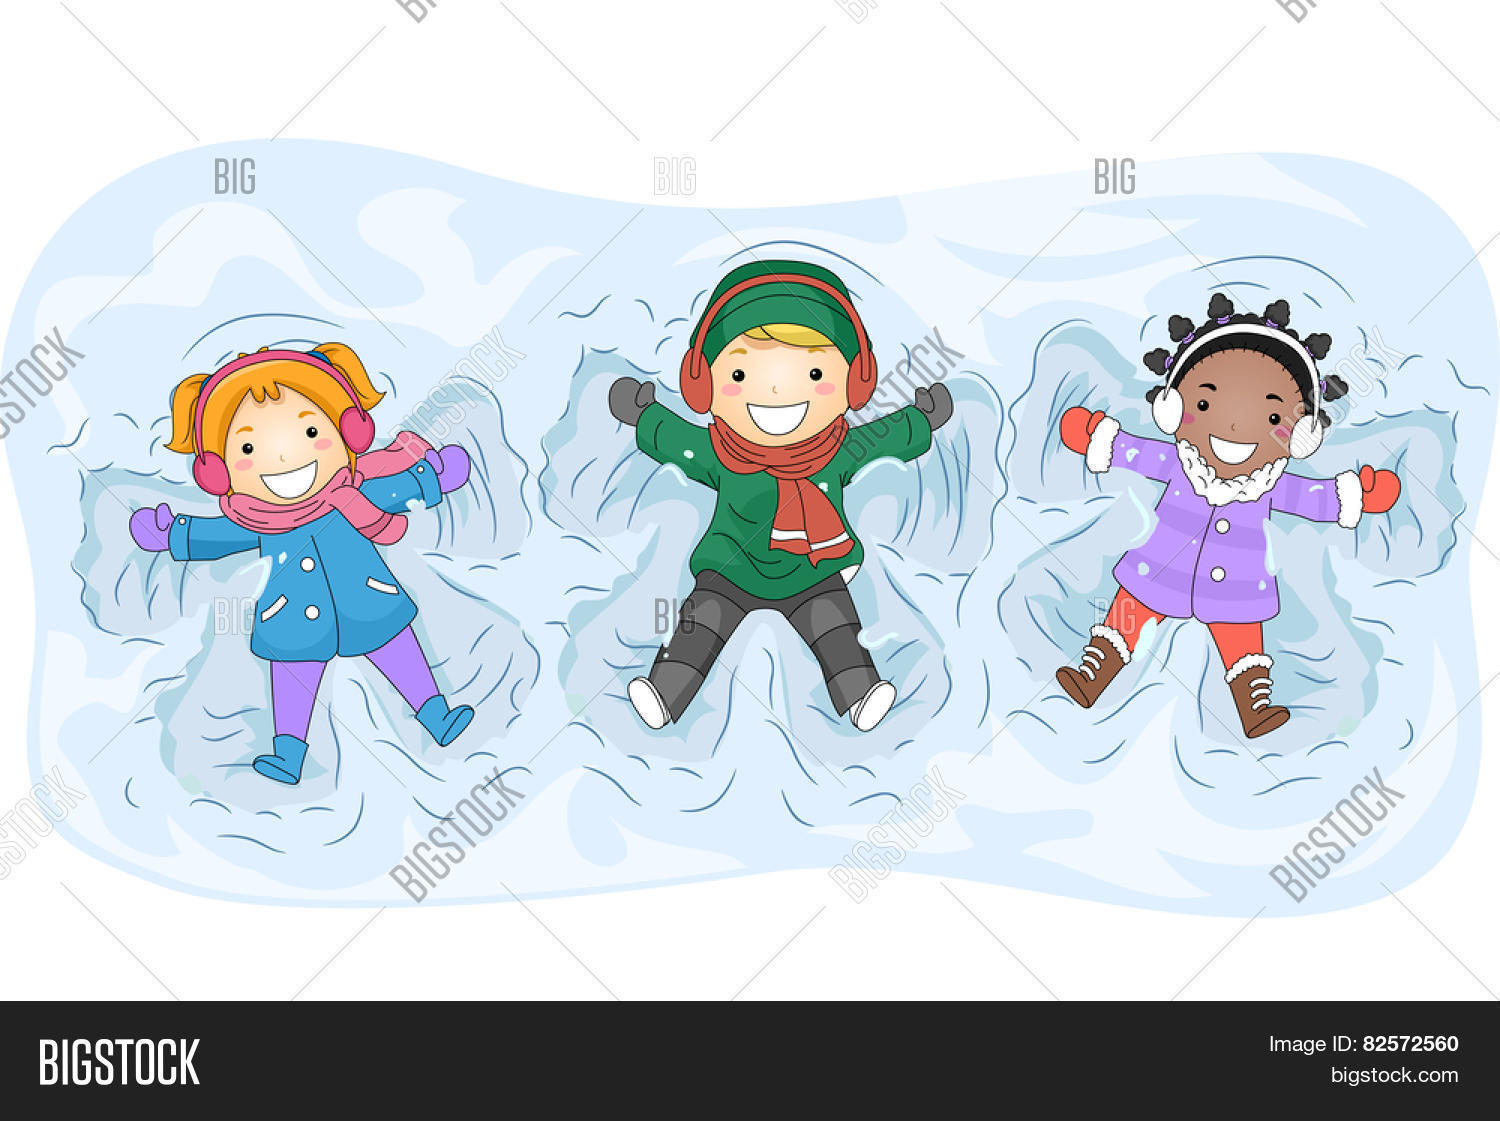 Illustration of Kids in Winter Gear Making Snow Angels Stock.